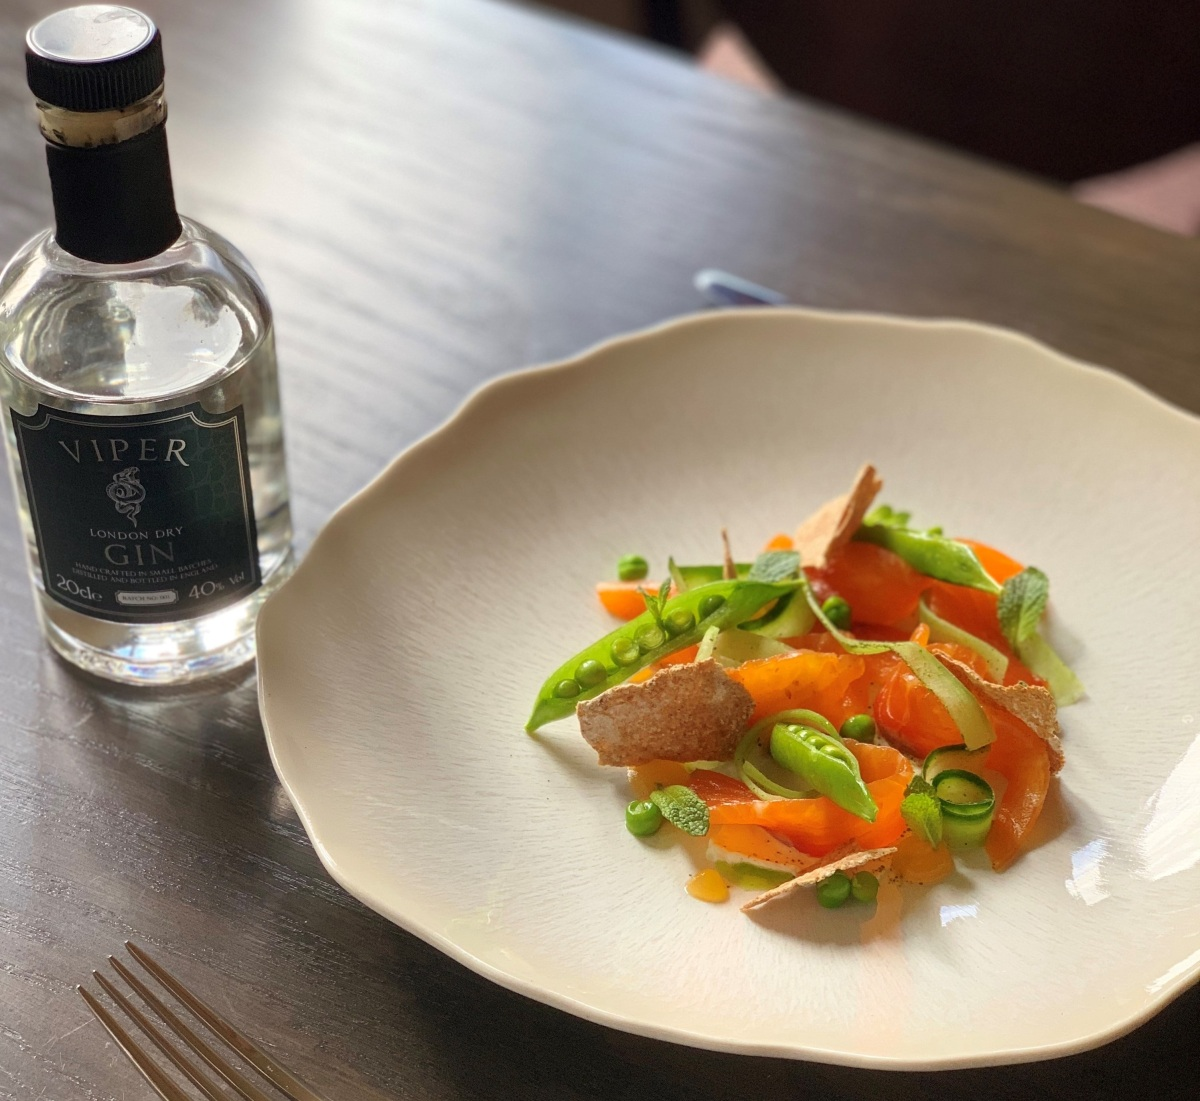 Chef's Recipe: Viper Gin Cured Trout with a Horseradish Crème Fraiche & Rye Crisps